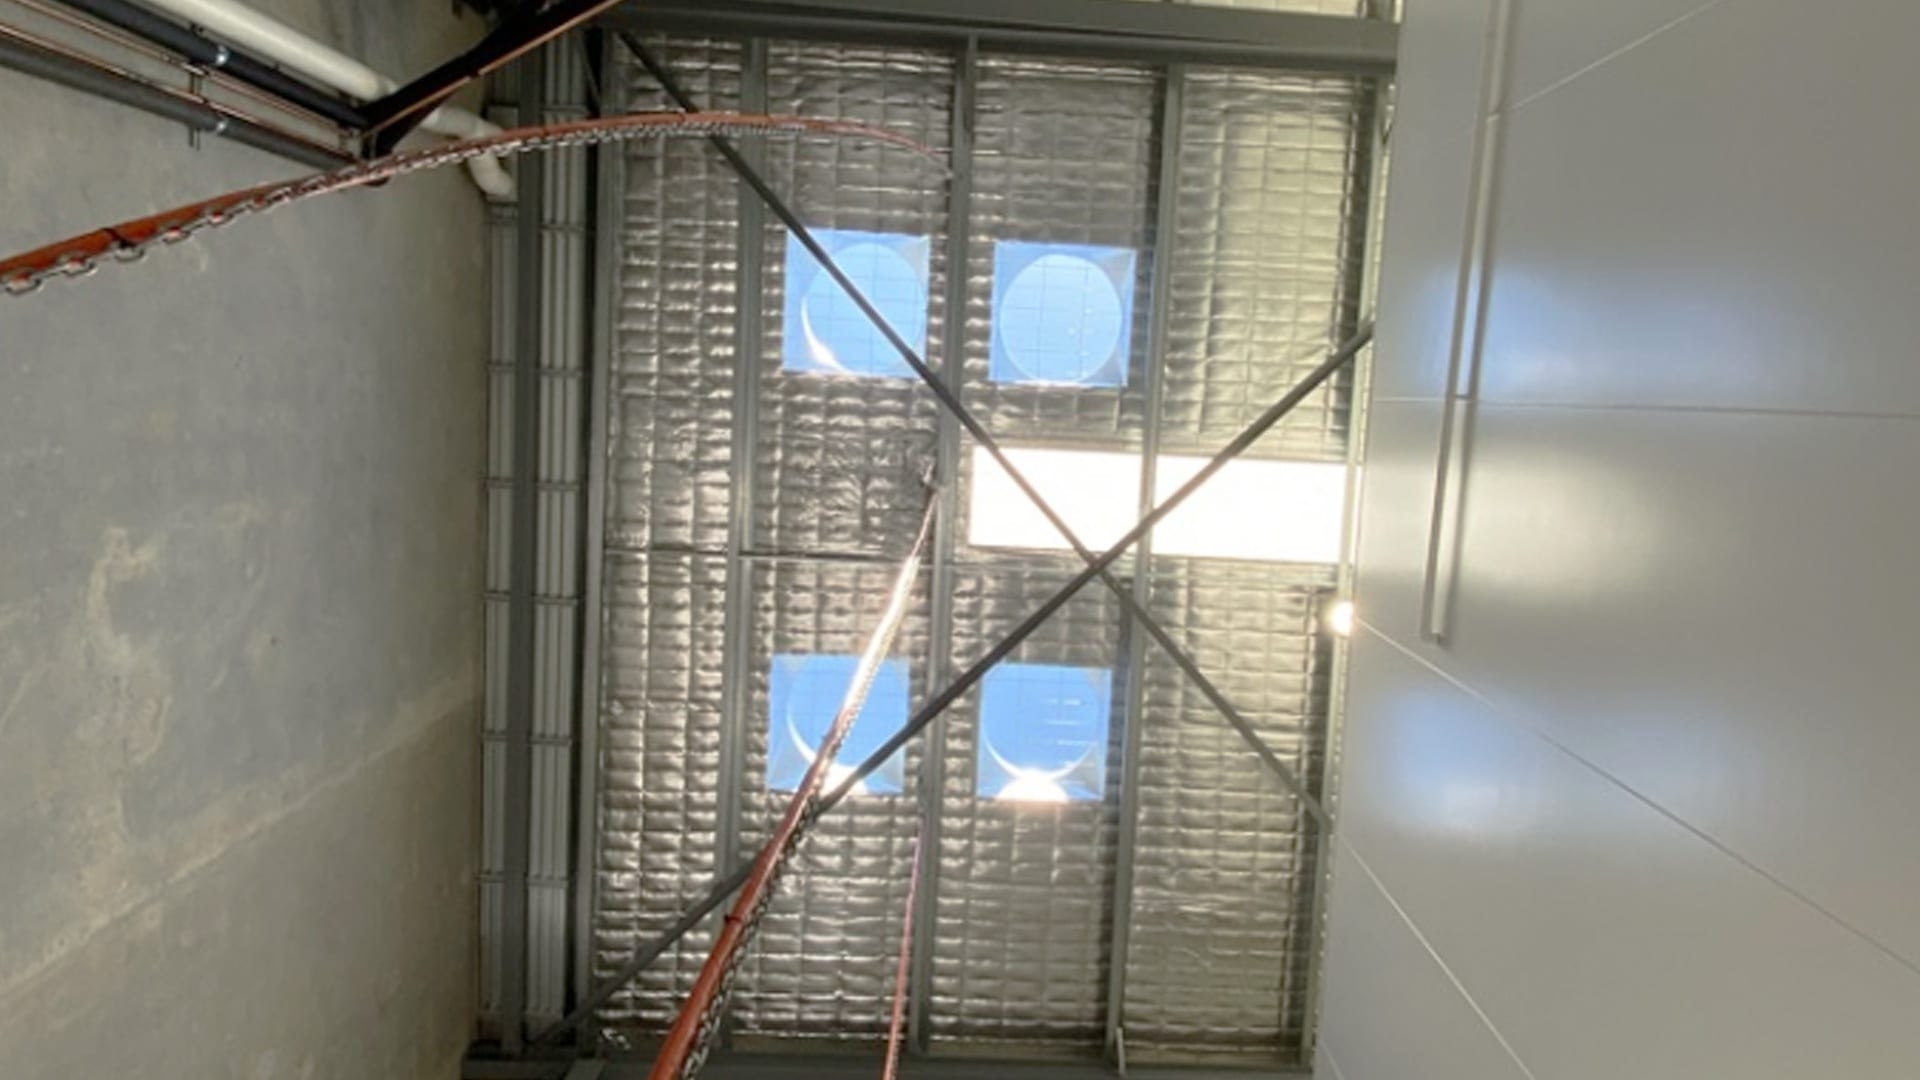 Installing 4 Wind Driven Roof Vents to Cool Refrigeration Units